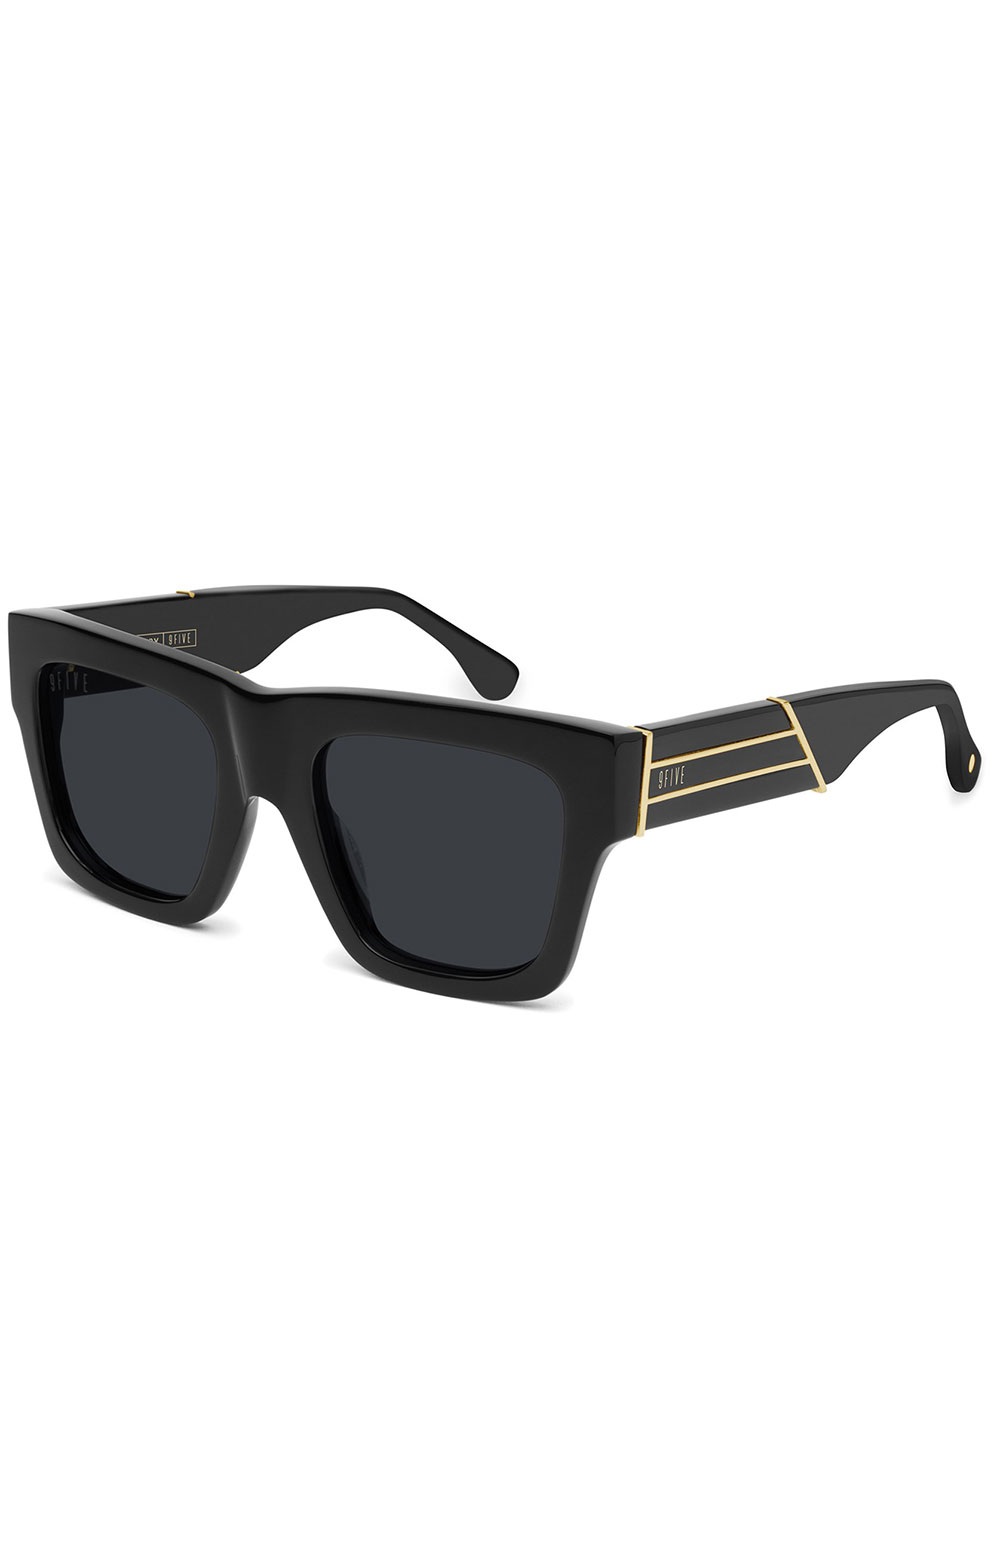 Lucy Sunglasses - Black/Gold